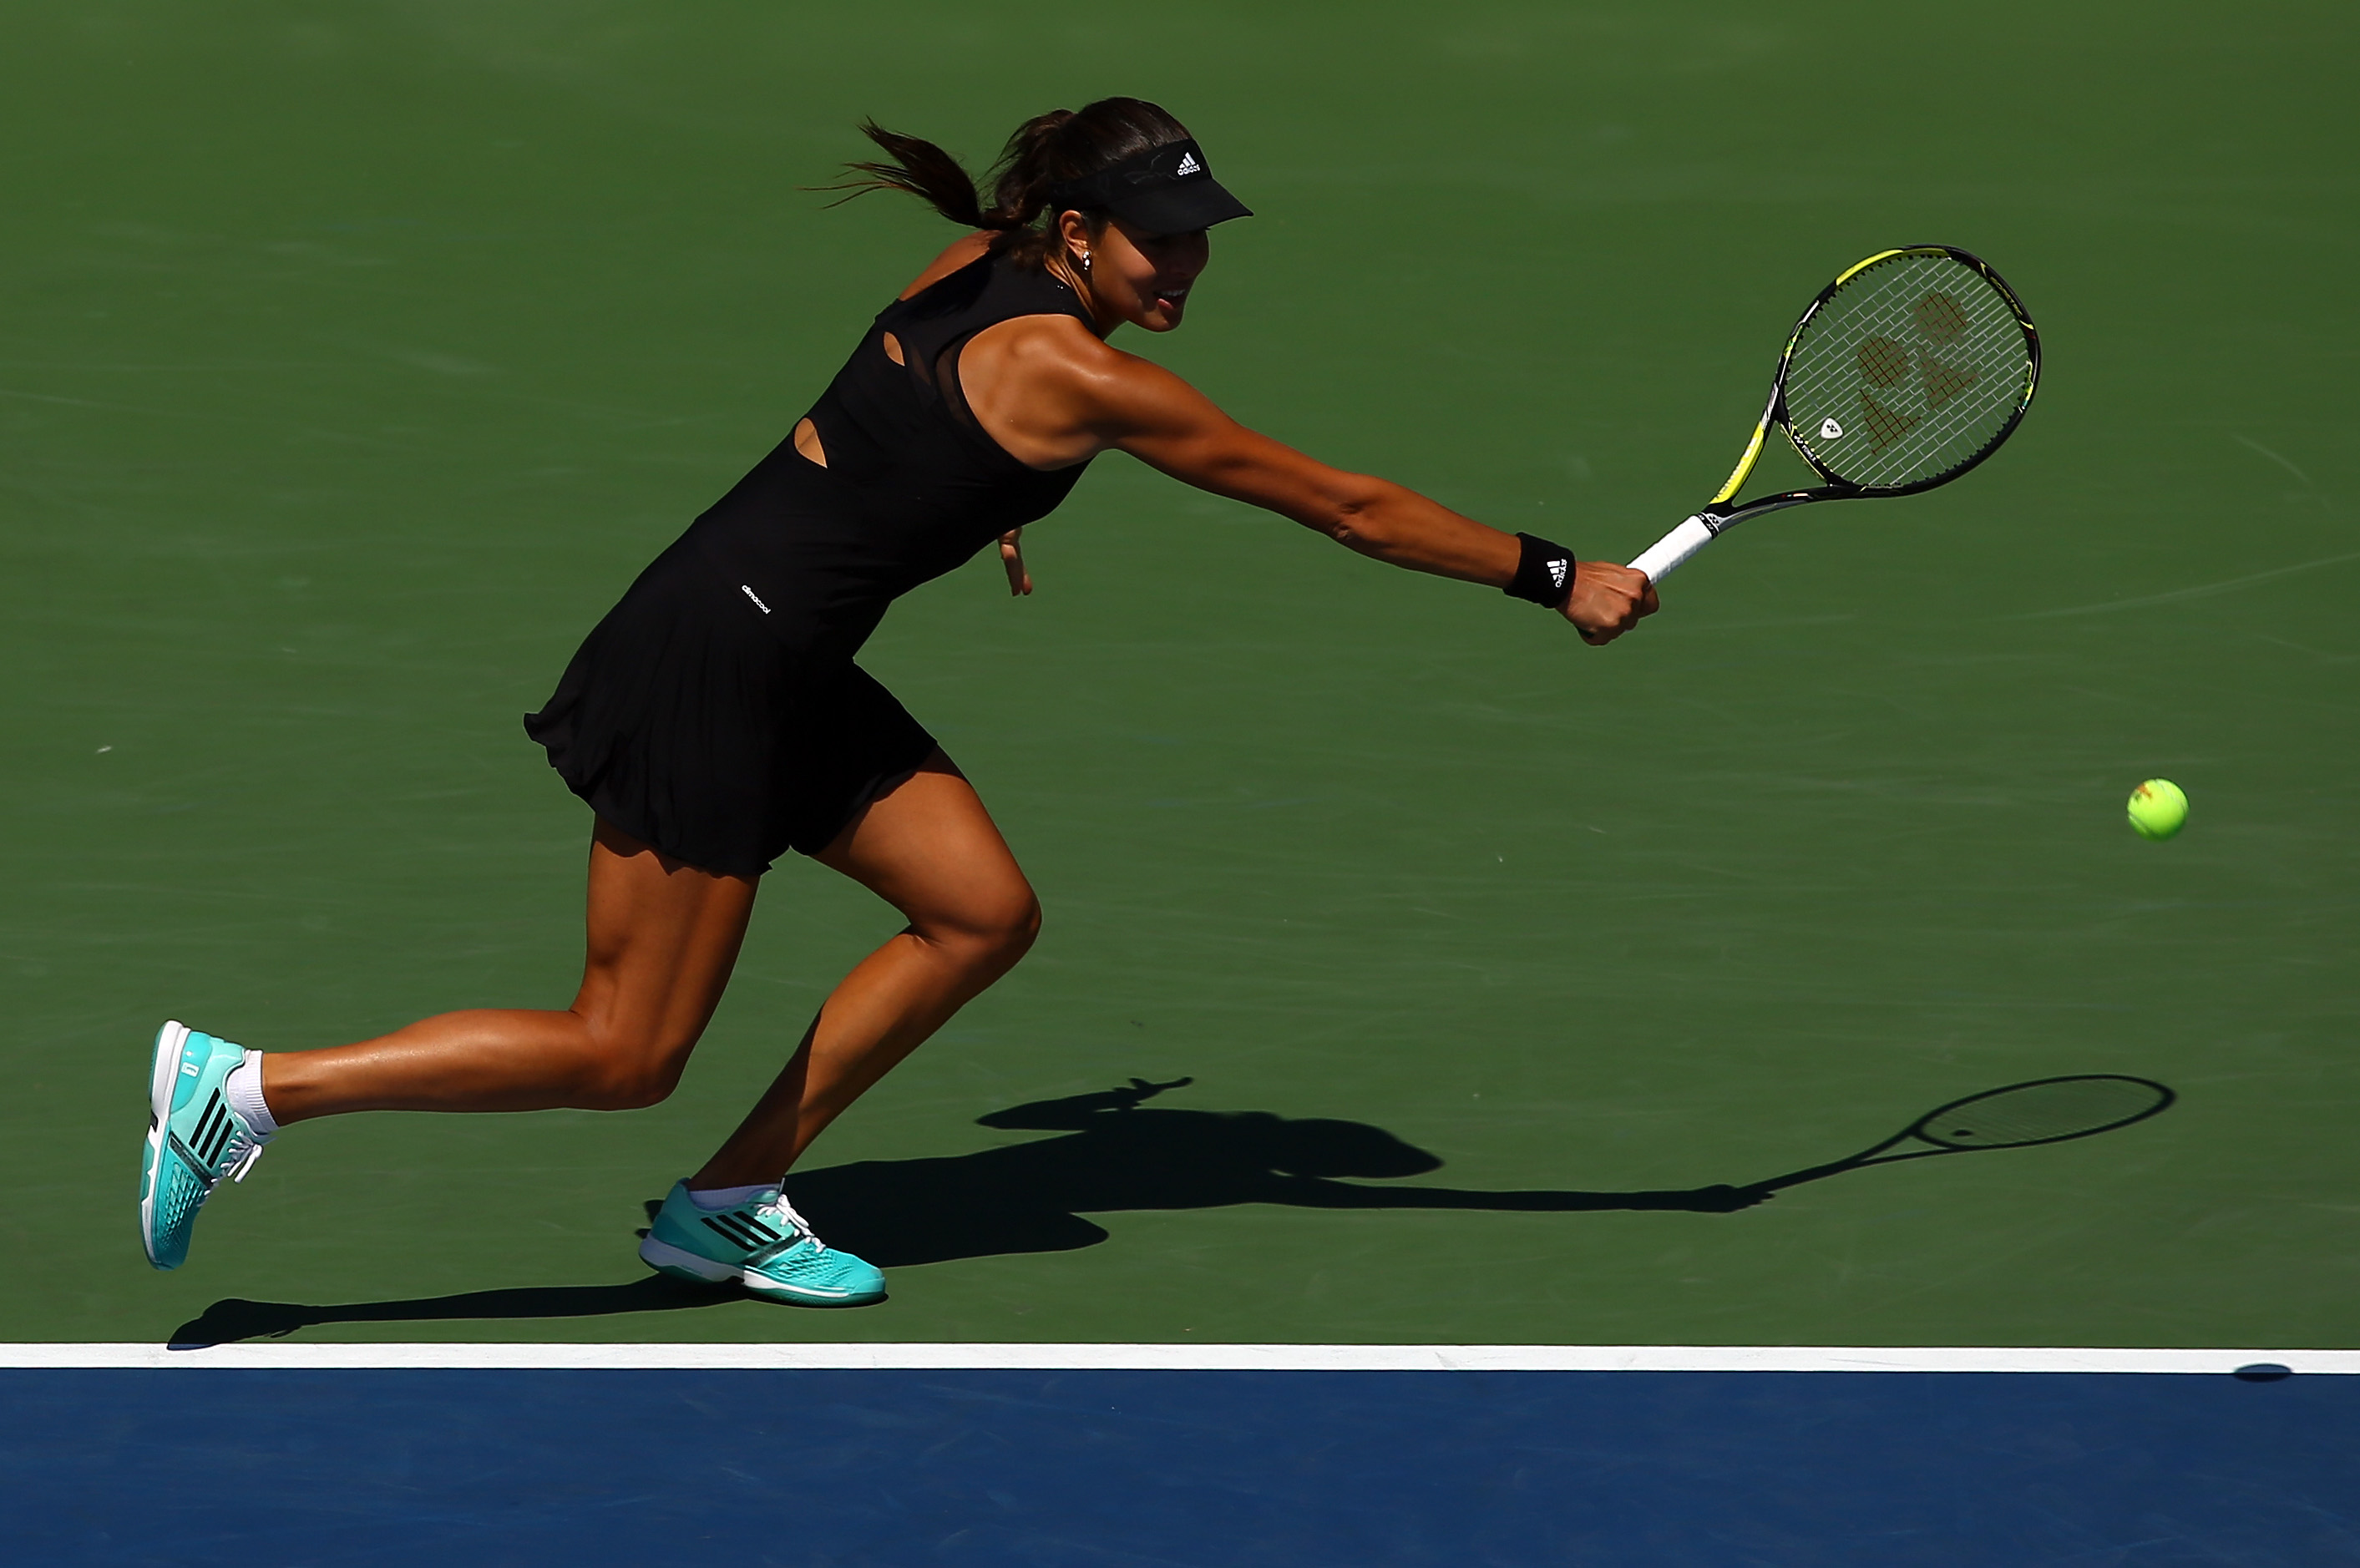 Ivanovic's Adidas little black dress was perfect.